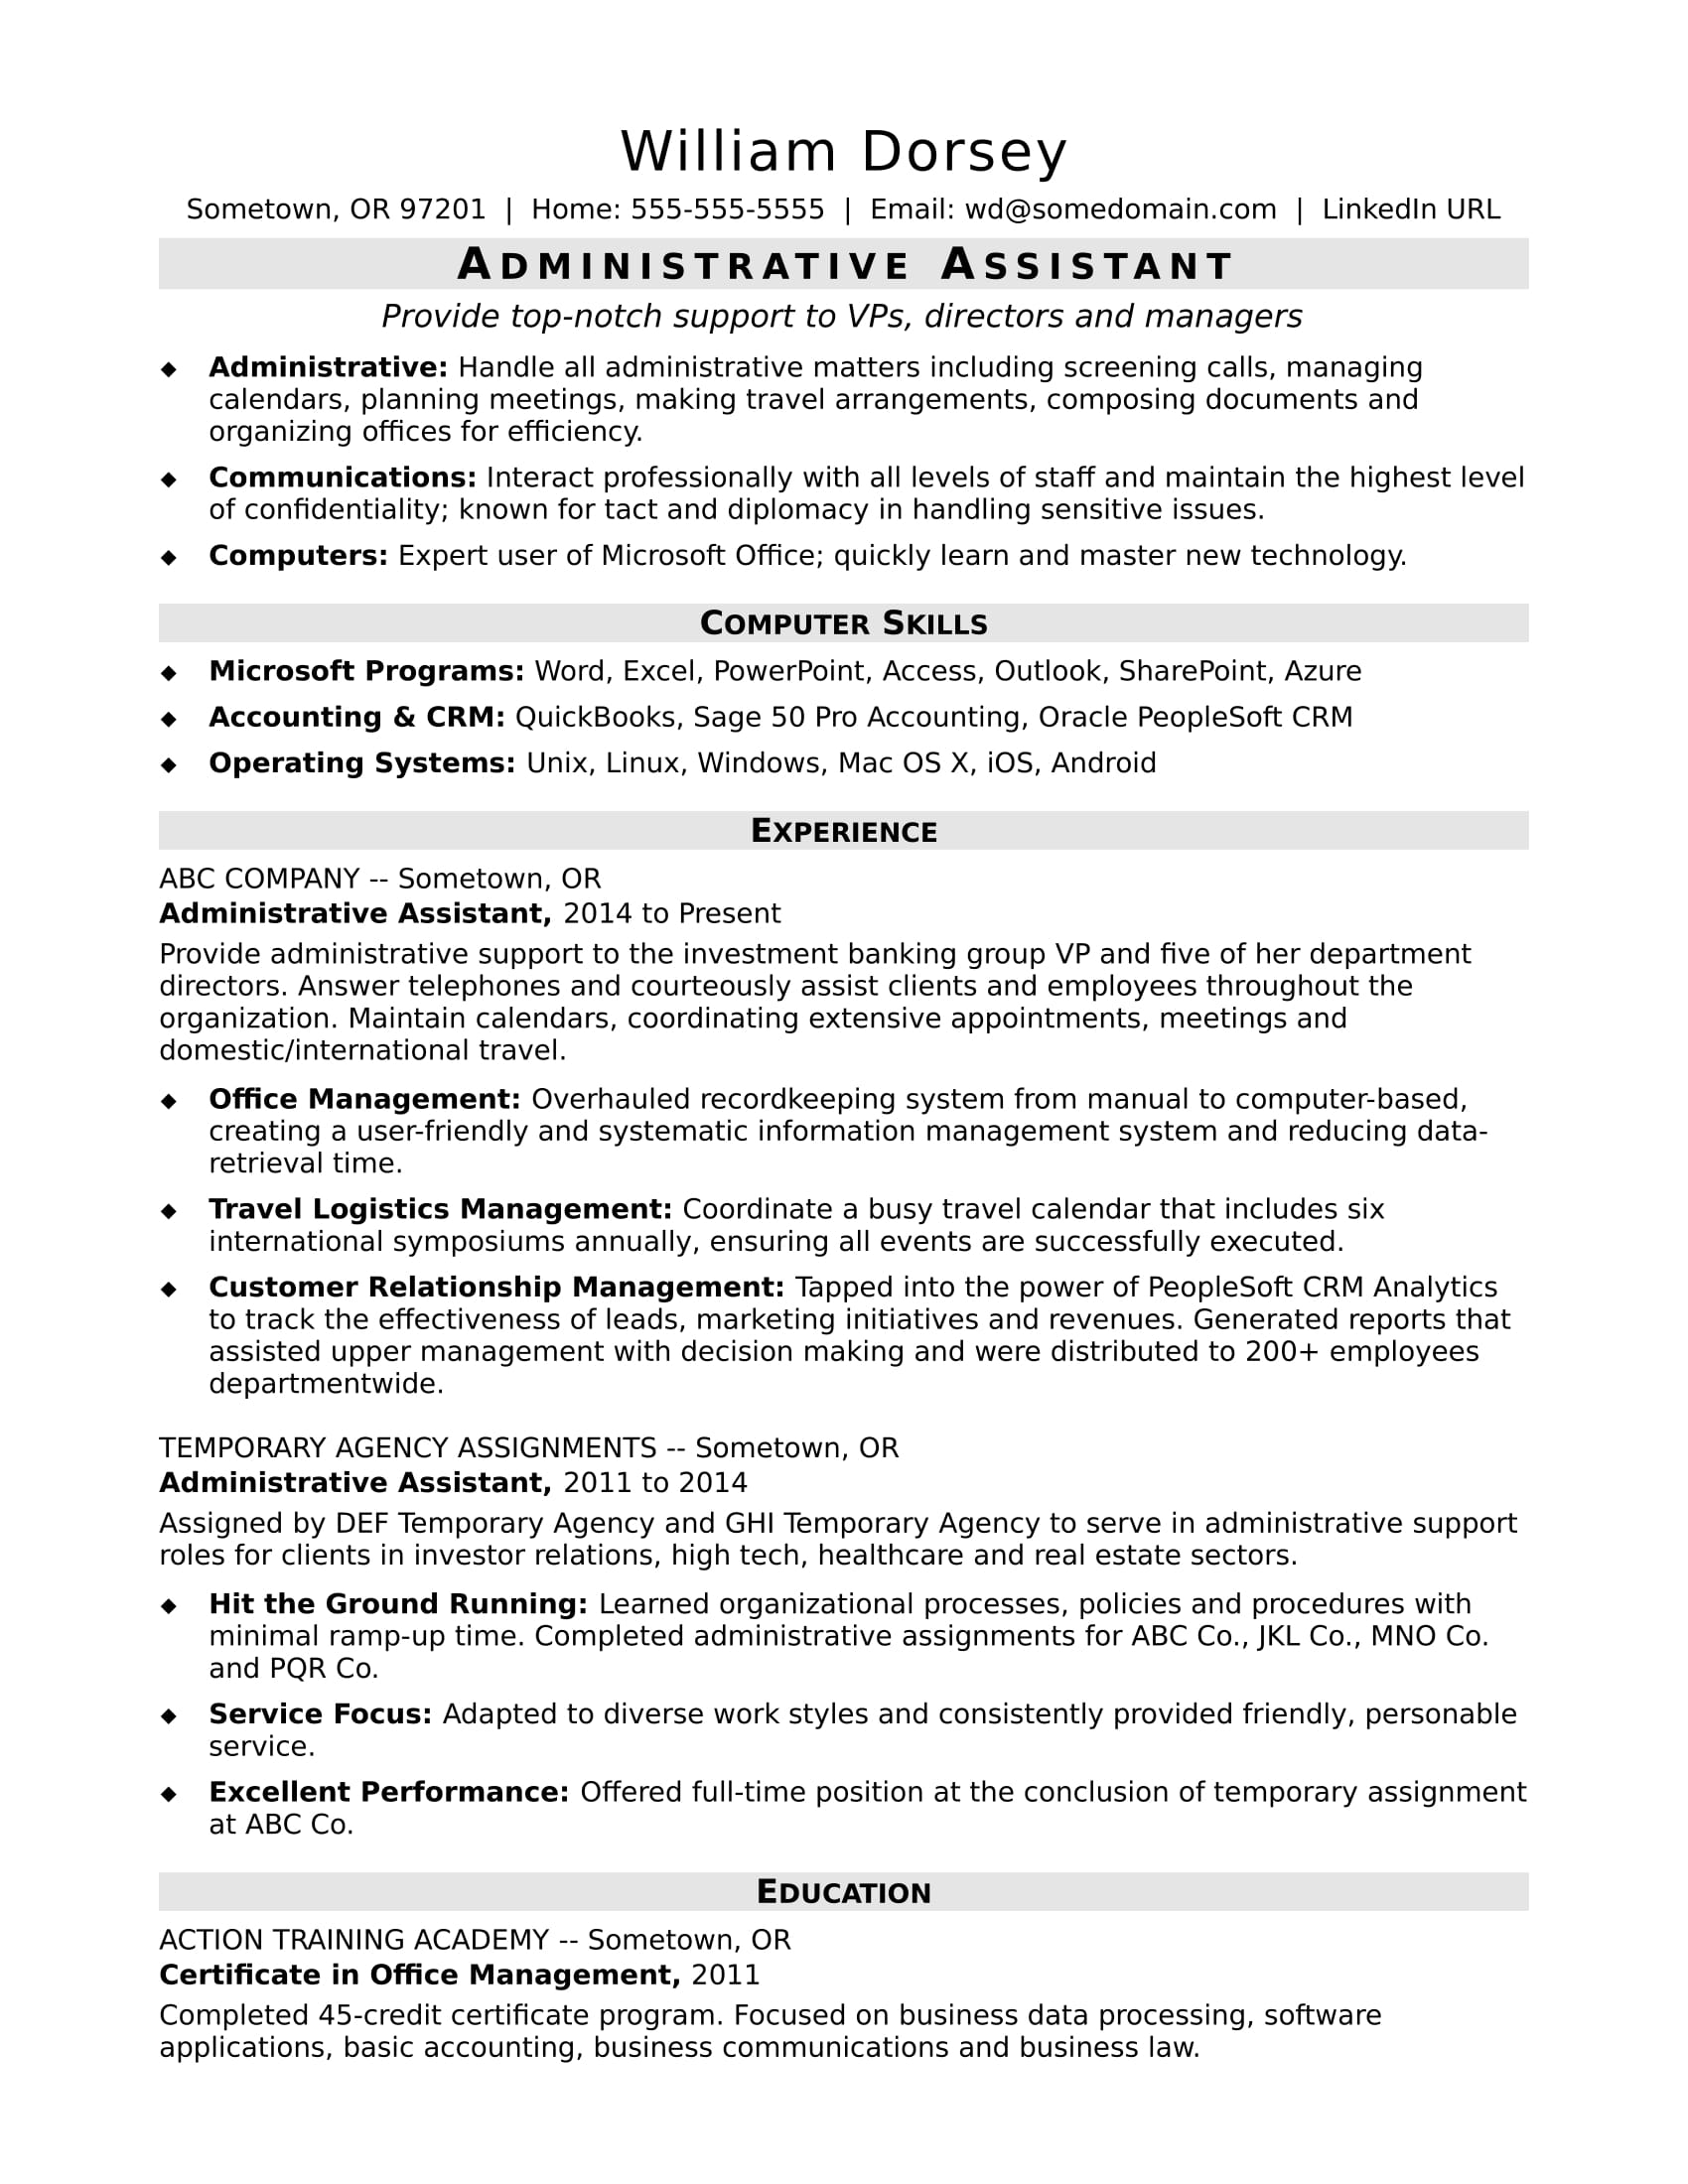 midlevel administrative assistant resume sample monster law firm receptionist unique Resume Assistant Resume Sample